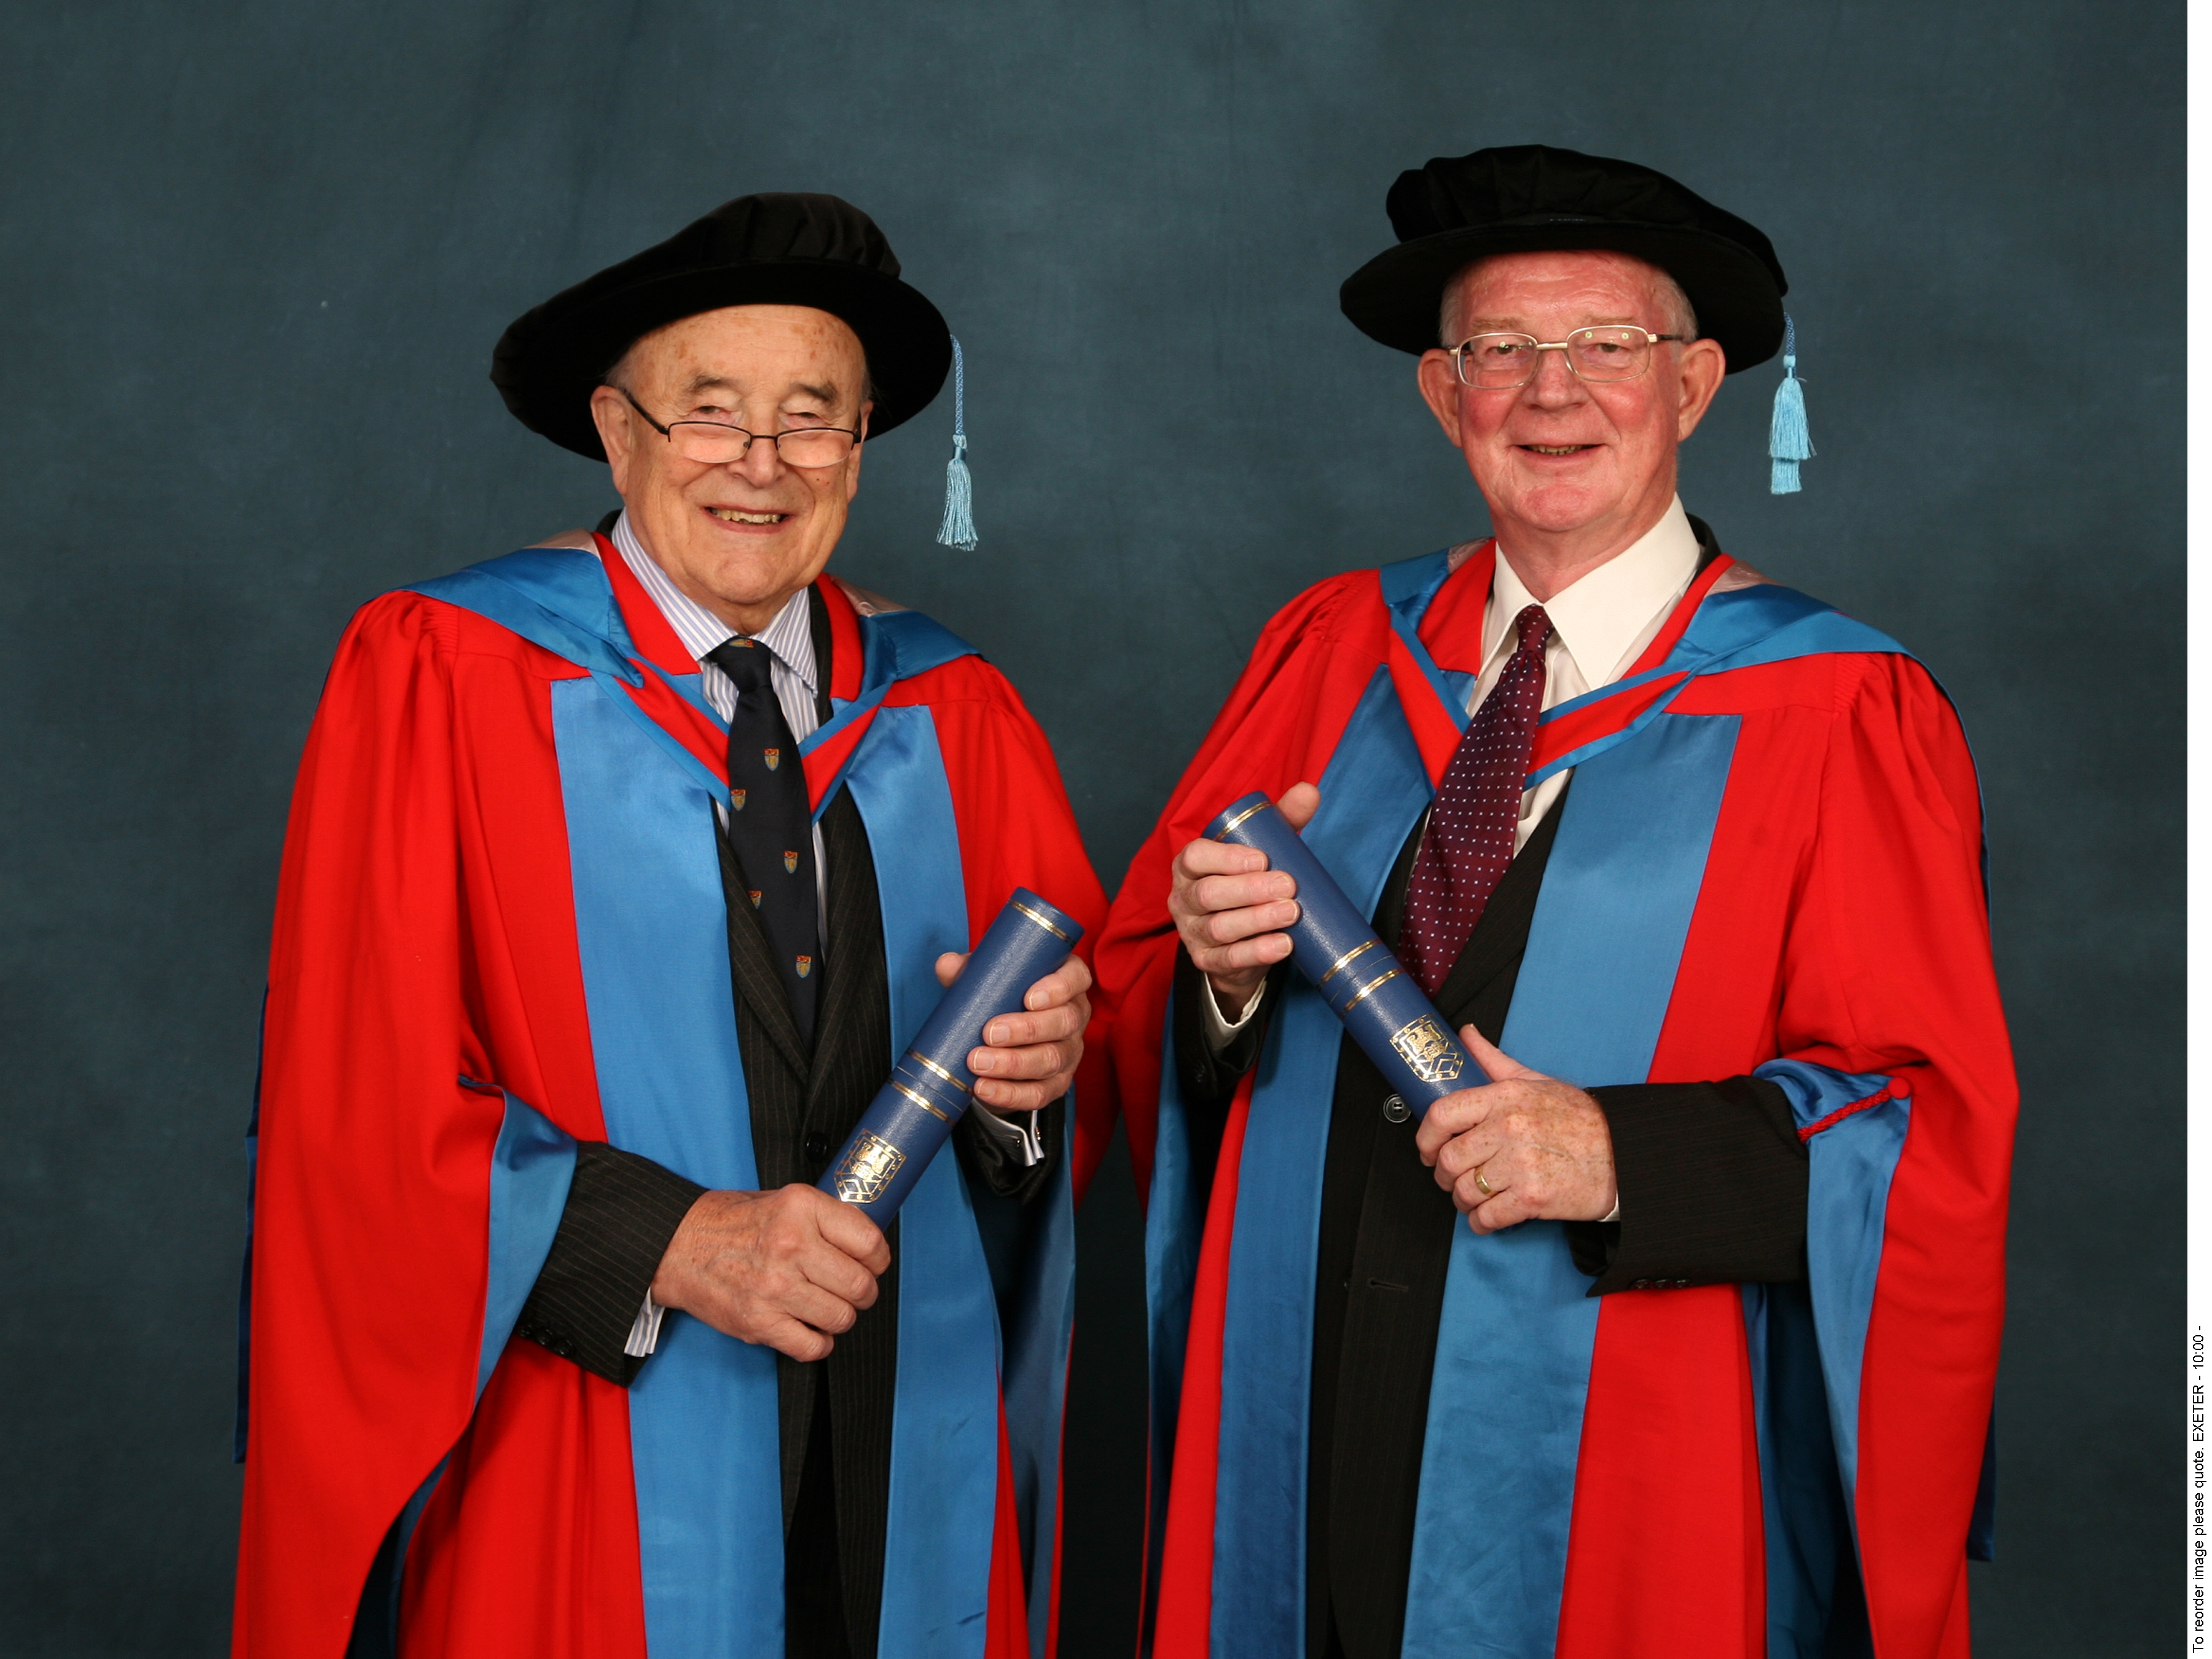 Hip creators Prof Robin Ling (left) and Dr Clive Lee received honorary degrees from the University of Exeter in 2009 (University of Exeter/PA).